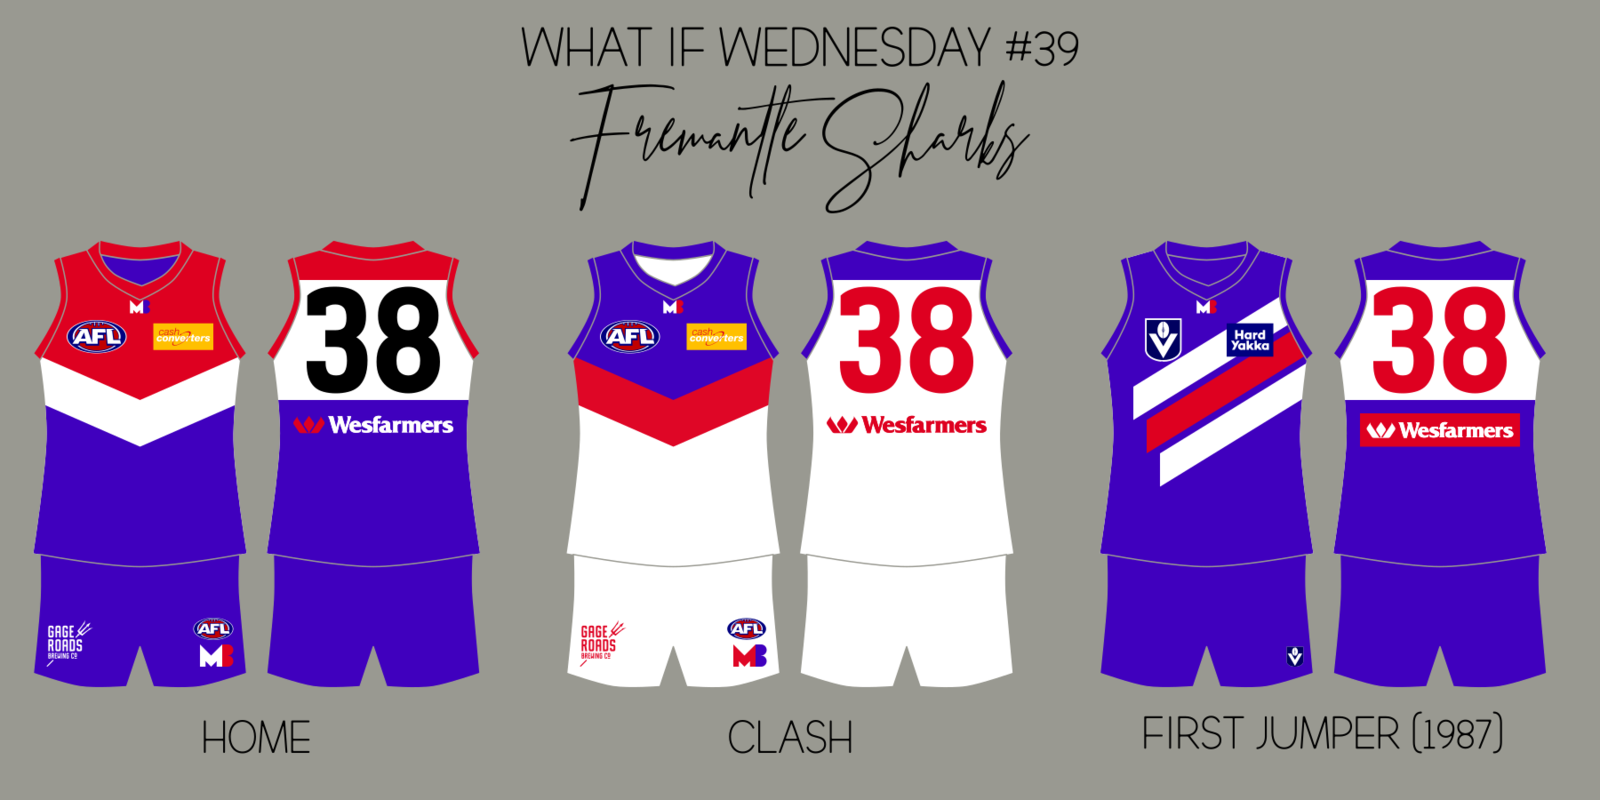 39 Fremantle Sharks.png